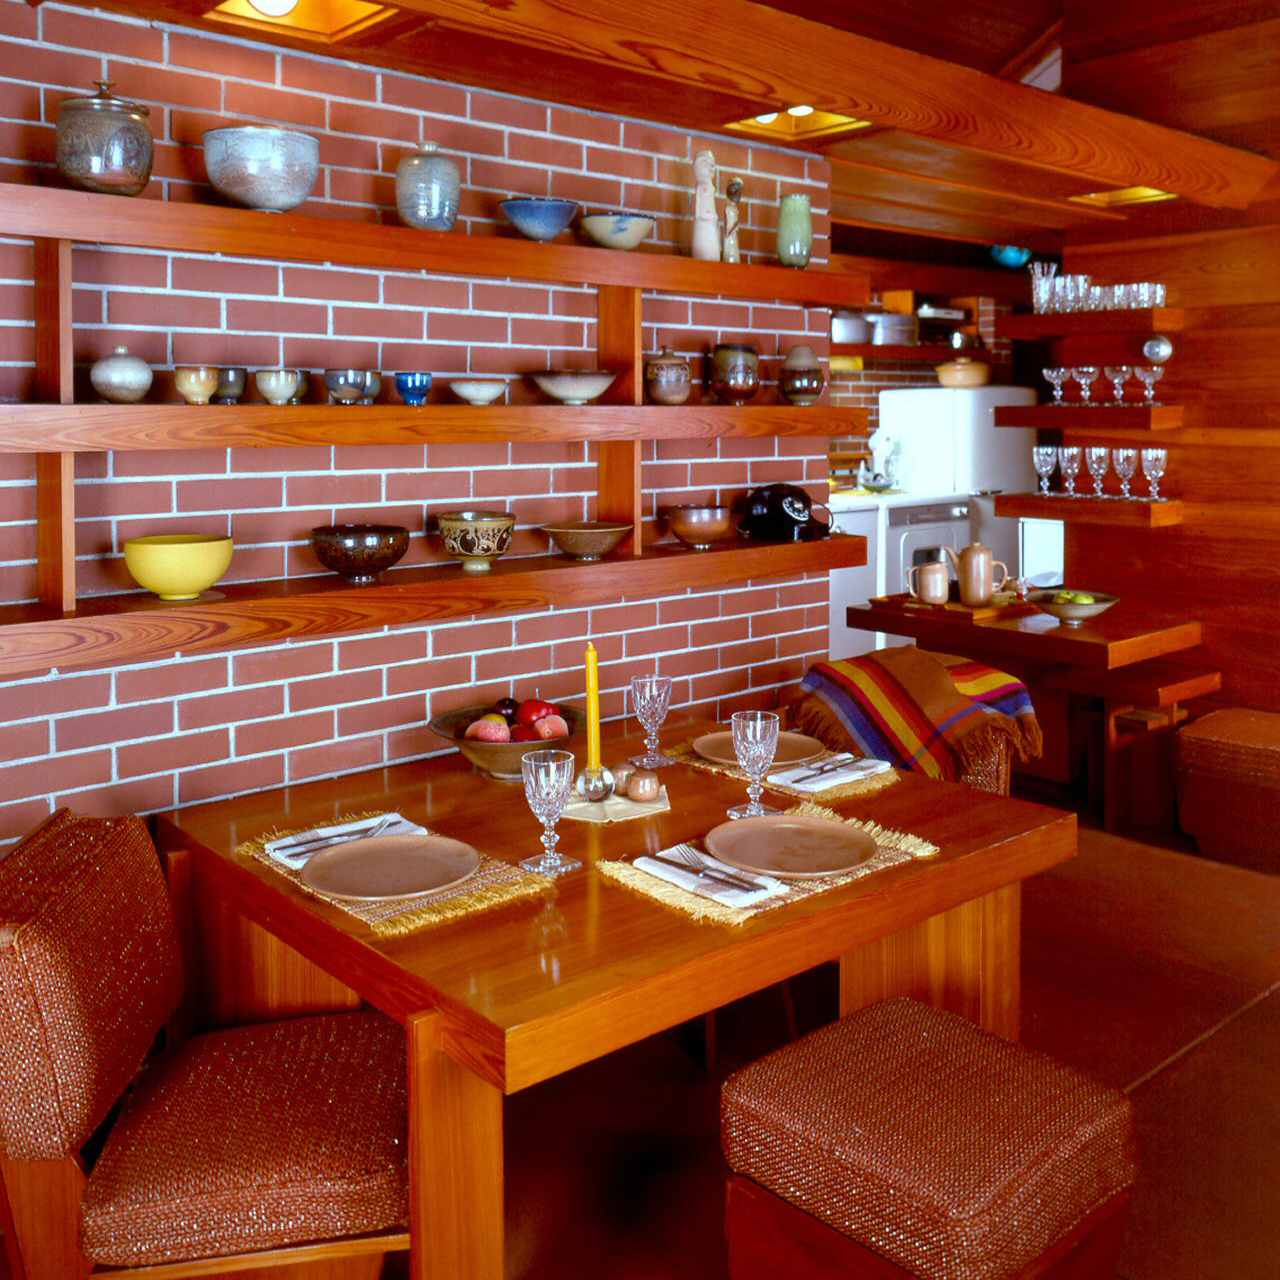 Dining area at the Zimmerman house by Frank Lloyd Wright